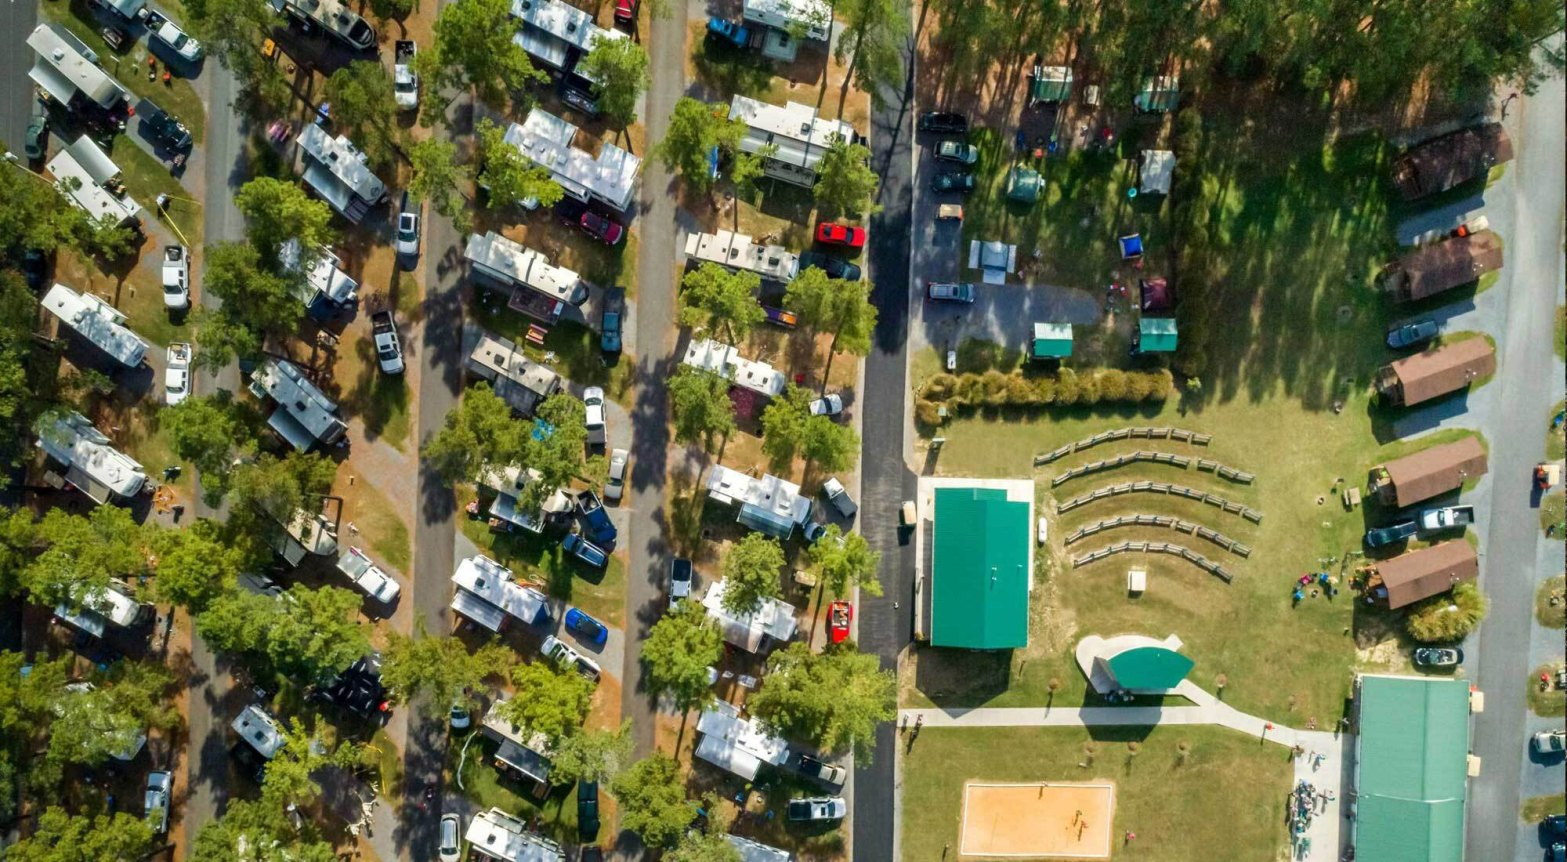 Aerial view of campground with paths lined with camping trailers and campsites